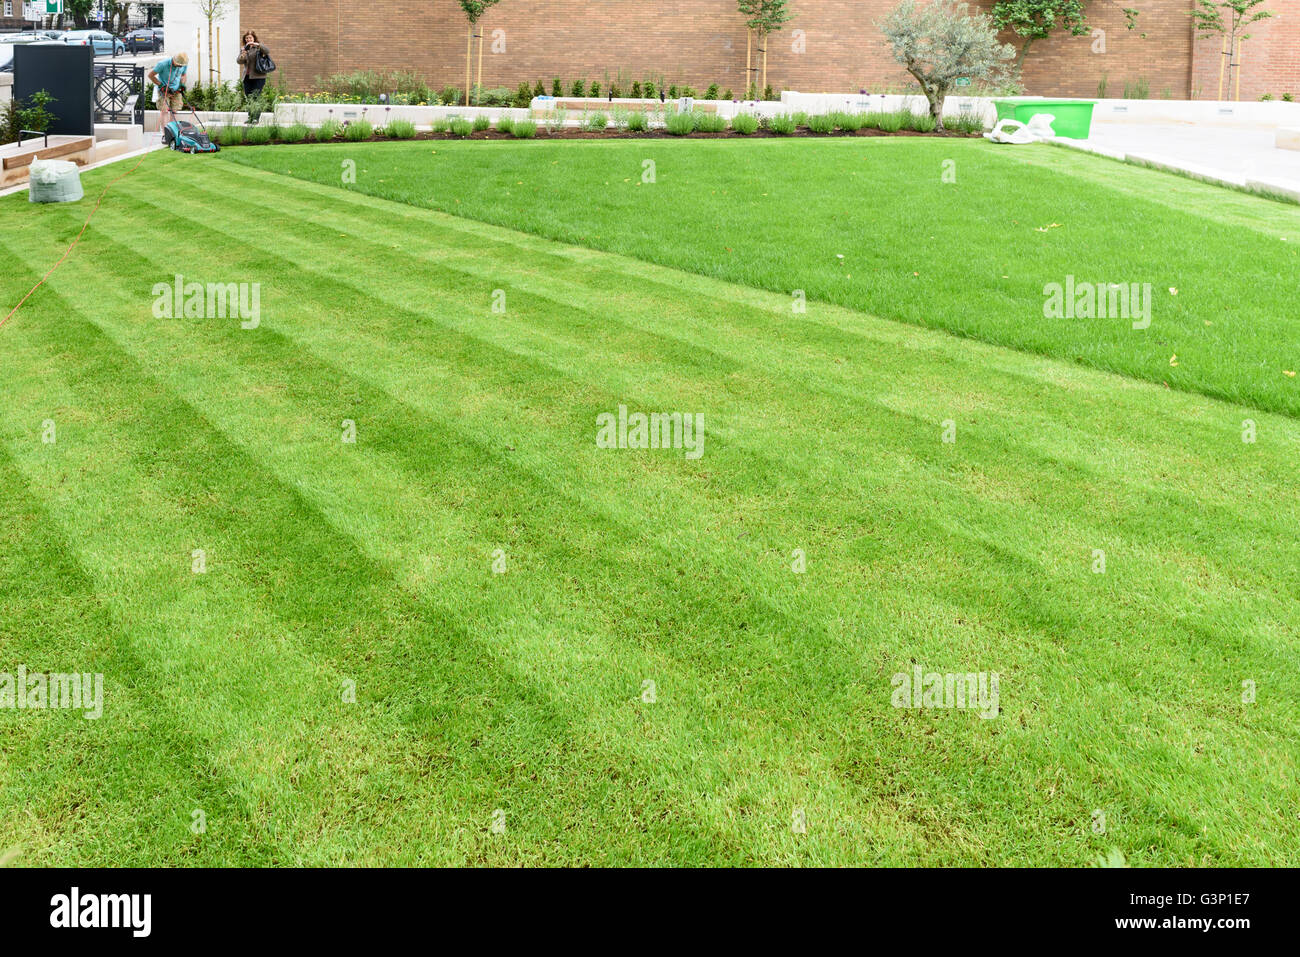 Man mowing lawn, London. - Stock Image